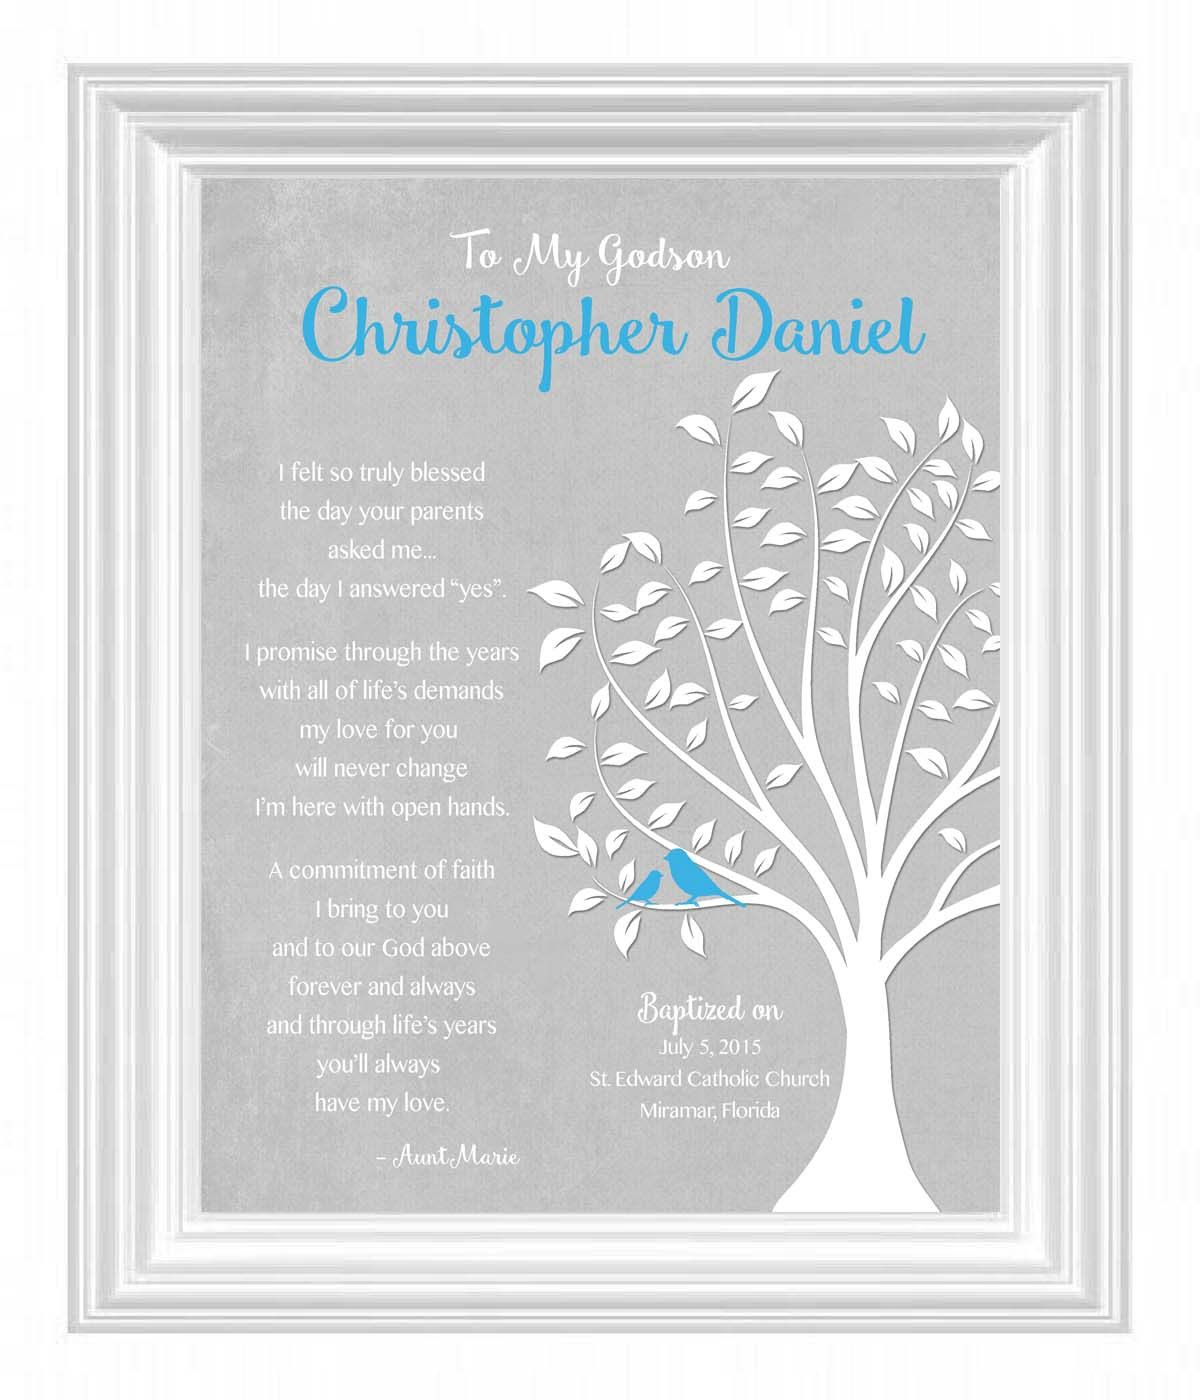 godson gift personalized - custom gift for godson on baptism day